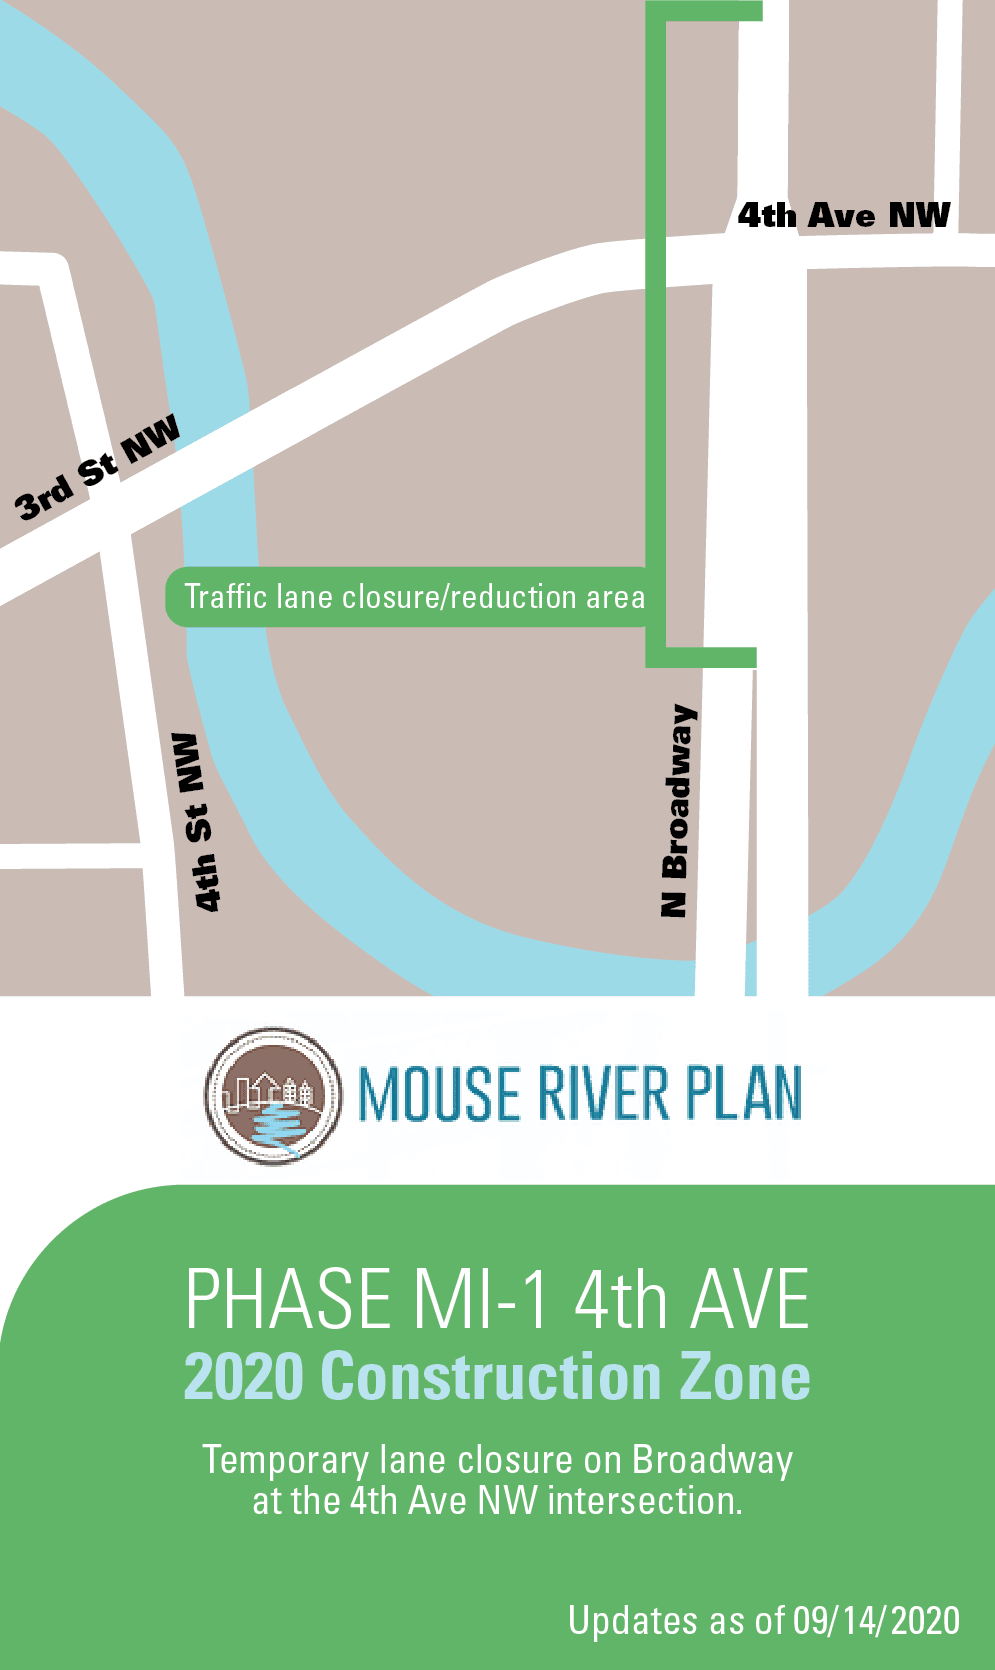 Minot_MouseRiver_4thAve_Map_Zoom_v10